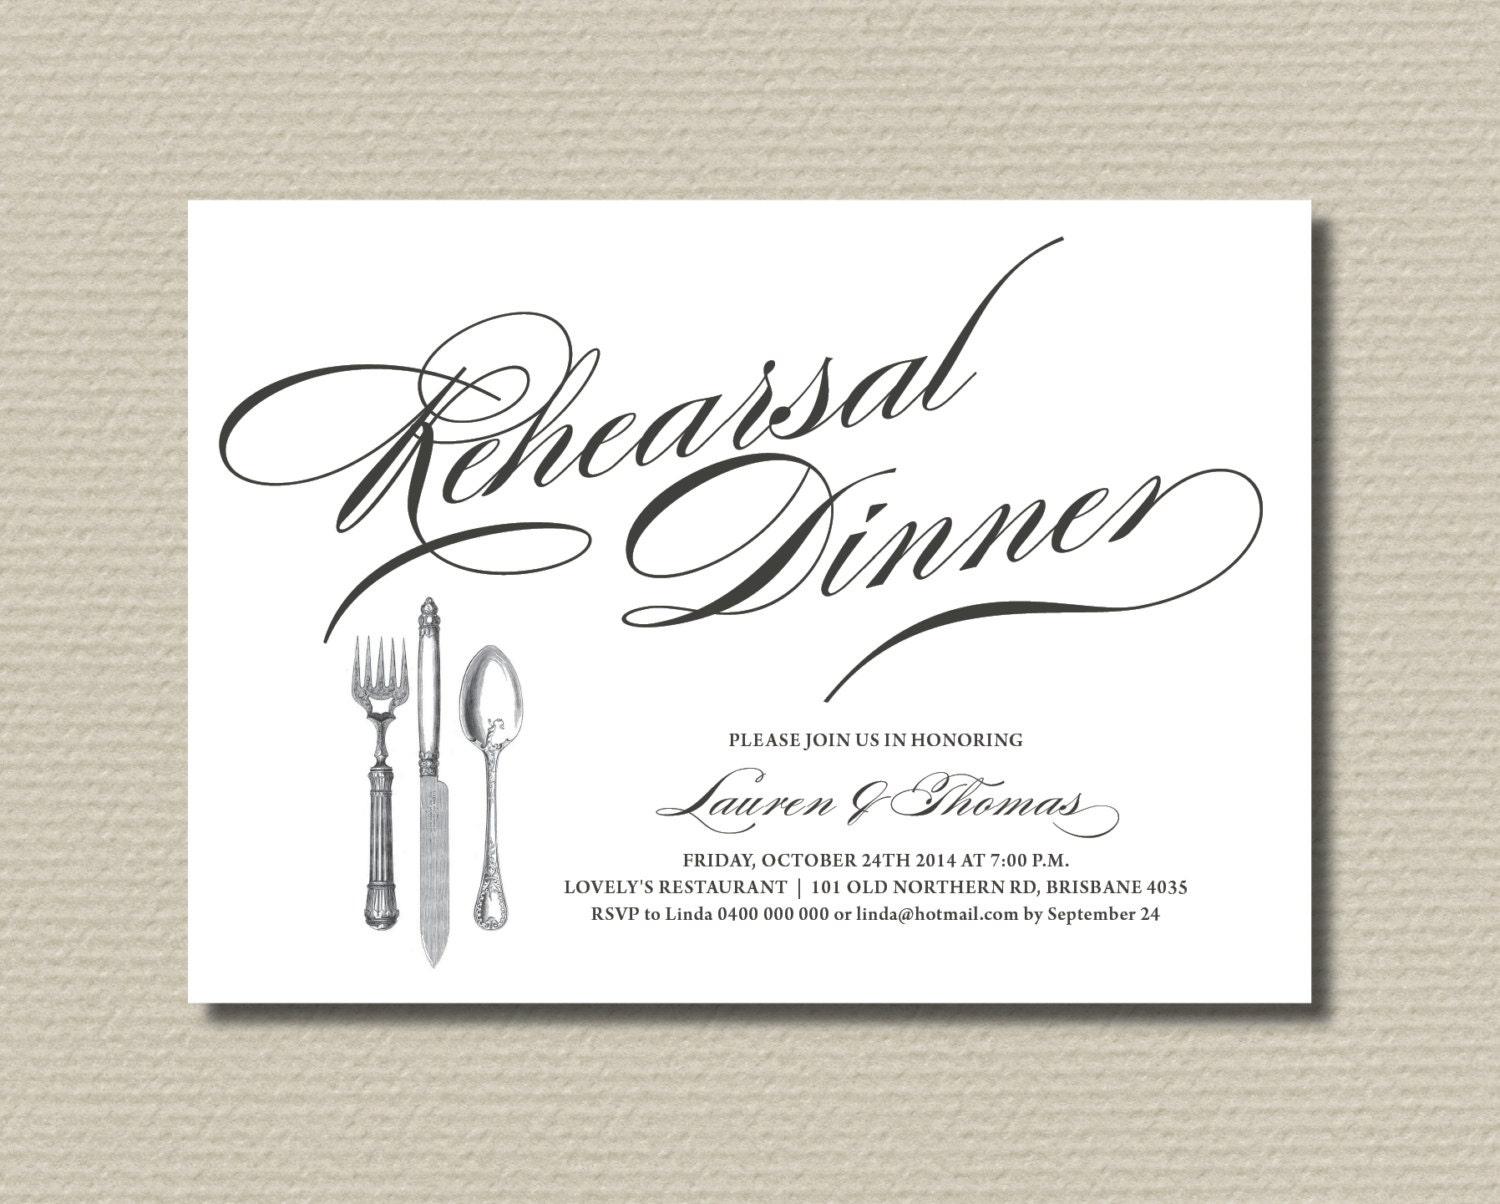 Striking image with regard to free printable rehearsal dinner invitations